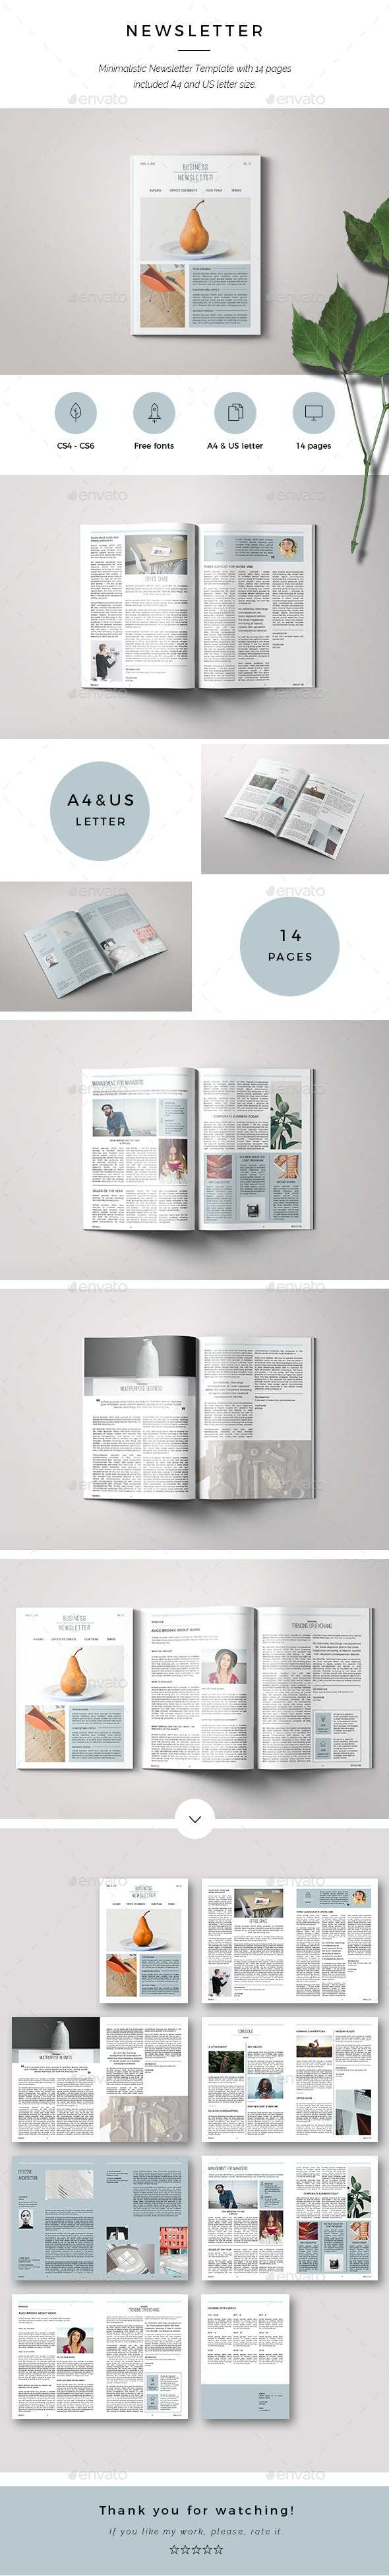 Newsletter Business - Newsletters Print Templates